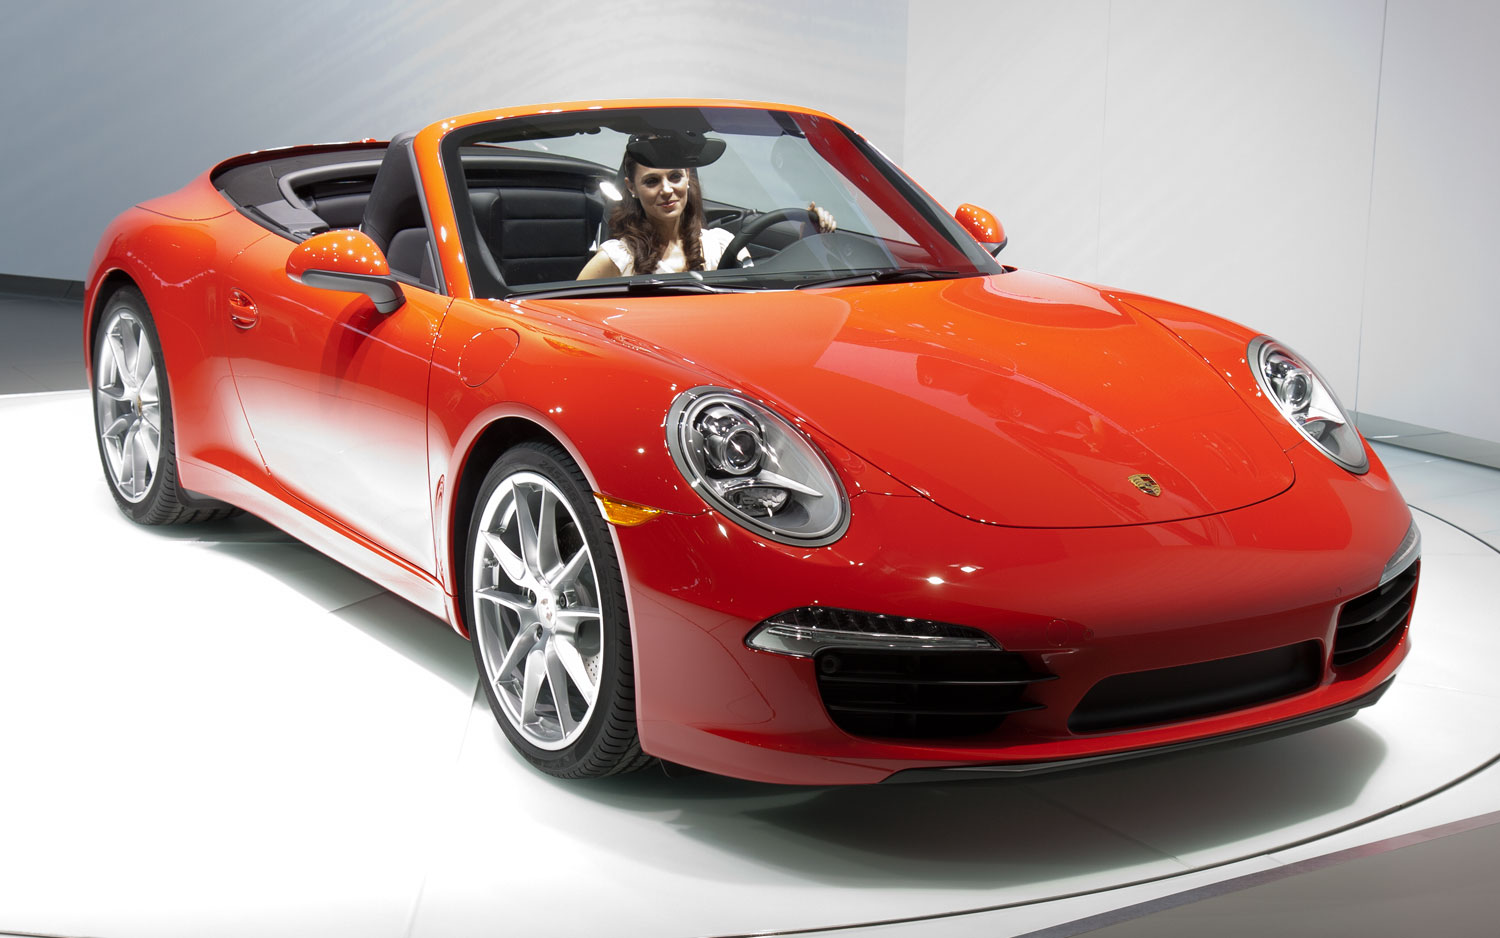 2012 Porsche 911 Carrera Cabriolet Front Three Quarters View1